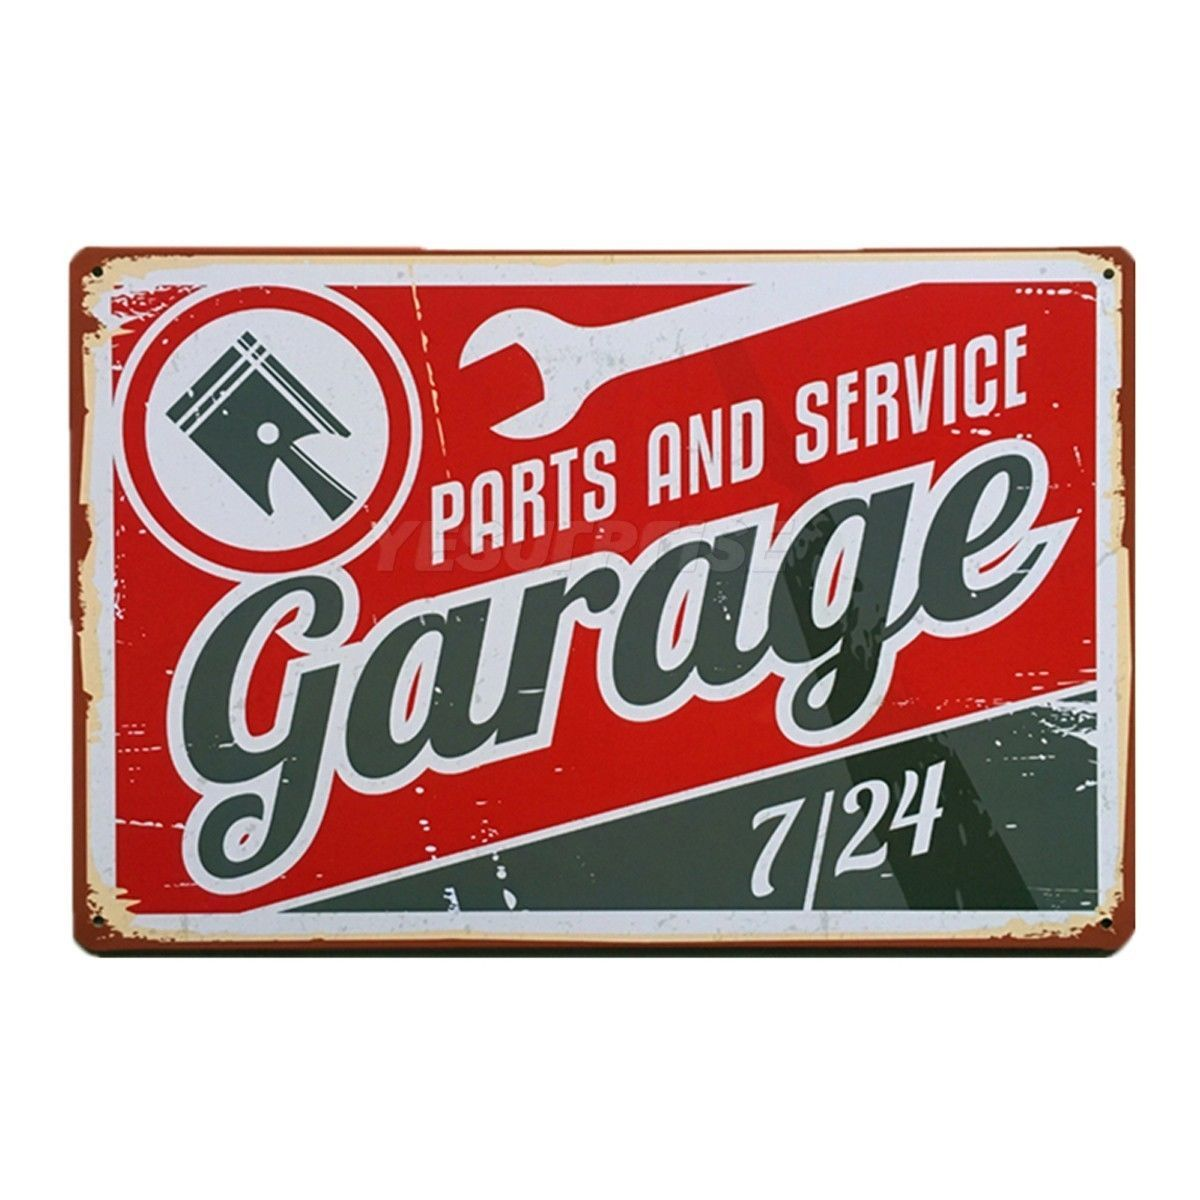 Decorative Wall Signs Gorgeous Retro Metal Poster Painting Vintage Car Sign Decorative Wall Home Inspiration Design